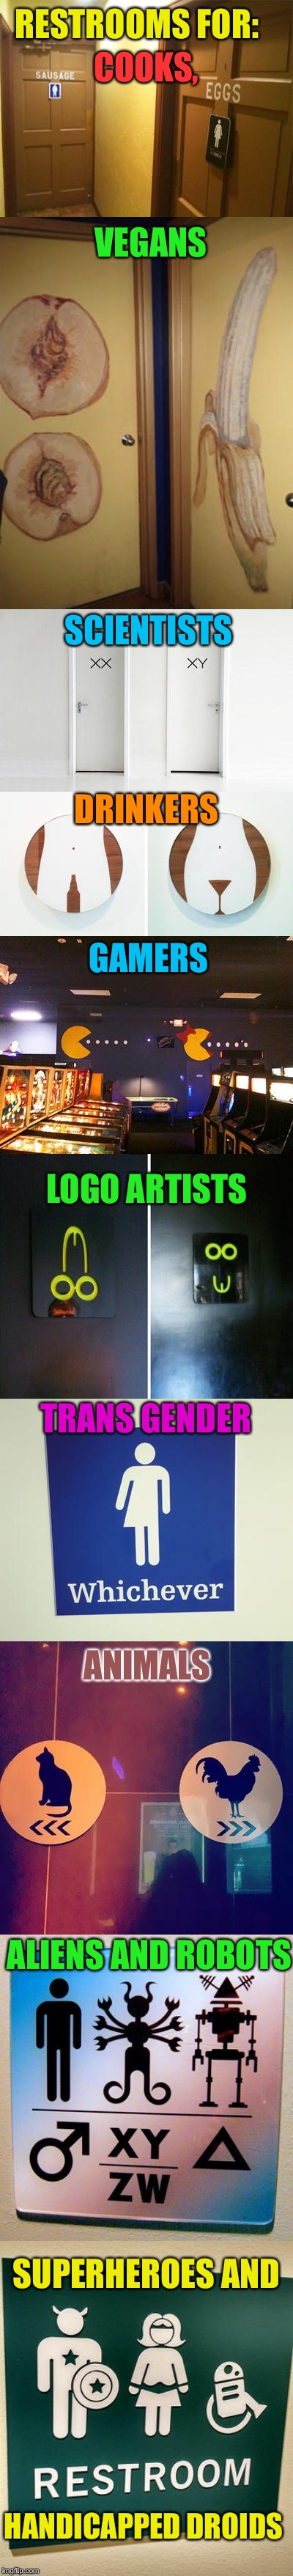 Custom Public Restrooms |  RESTROOMS FOR:; COOKS, VEGANS; SCIENTISTS; DRINKERS; GAMERS; LOGO ARTISTS; TRANS GENDER; ANIMALS; ALIENS AND ROBOTS; SUPERHEROES AND; HANDICAPPED DROIDS | image tagged in public restrooms,bathroom humor,transgender bathroom,funny signs,long memes,funny memes | made w/ Imgflip meme maker